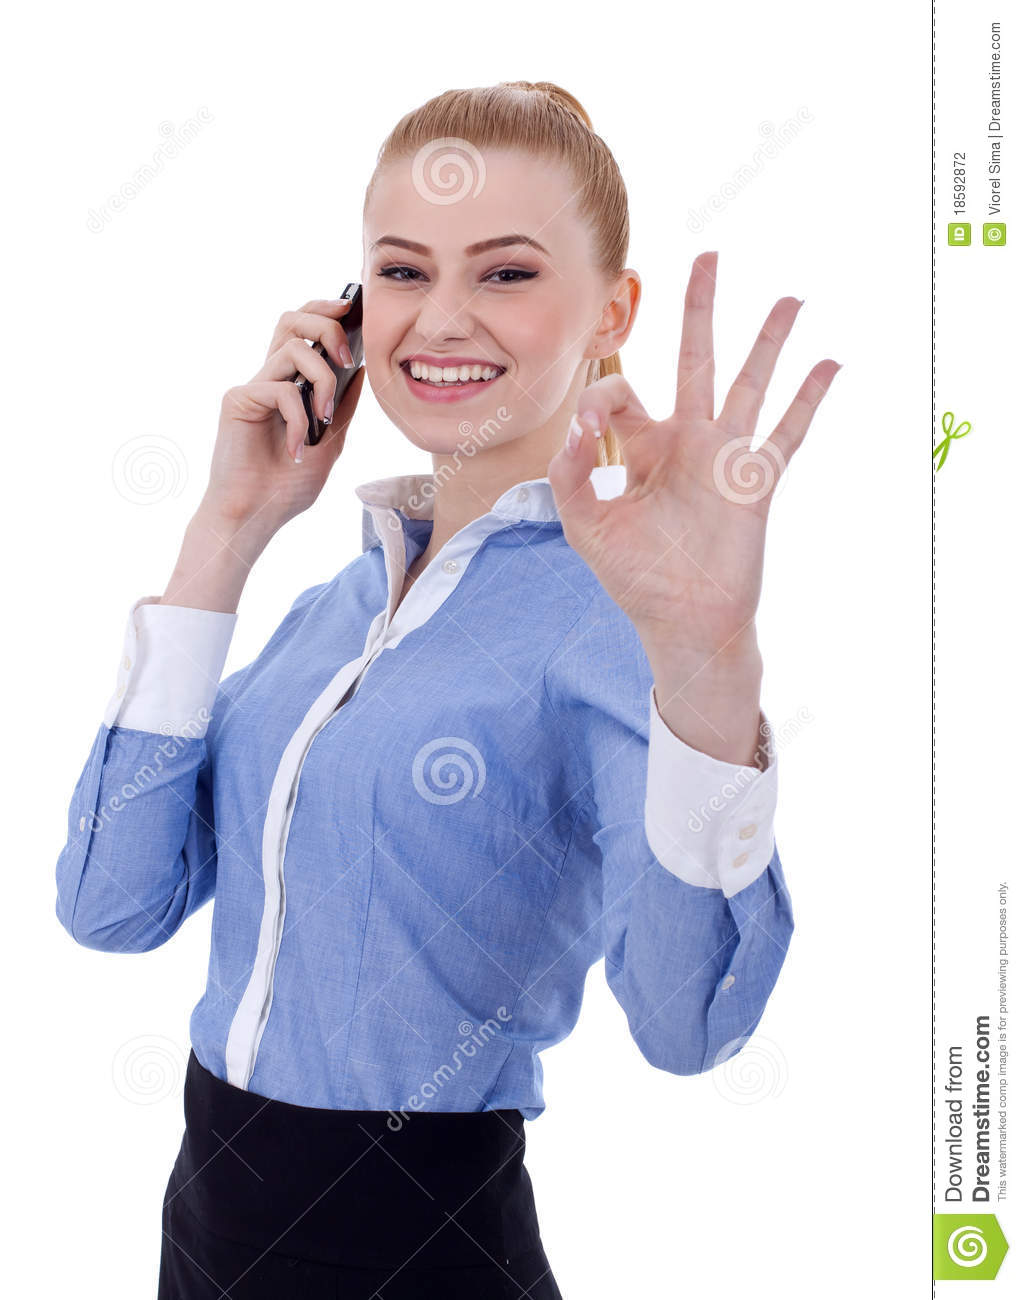 Businesswoman with phone and ok gesture